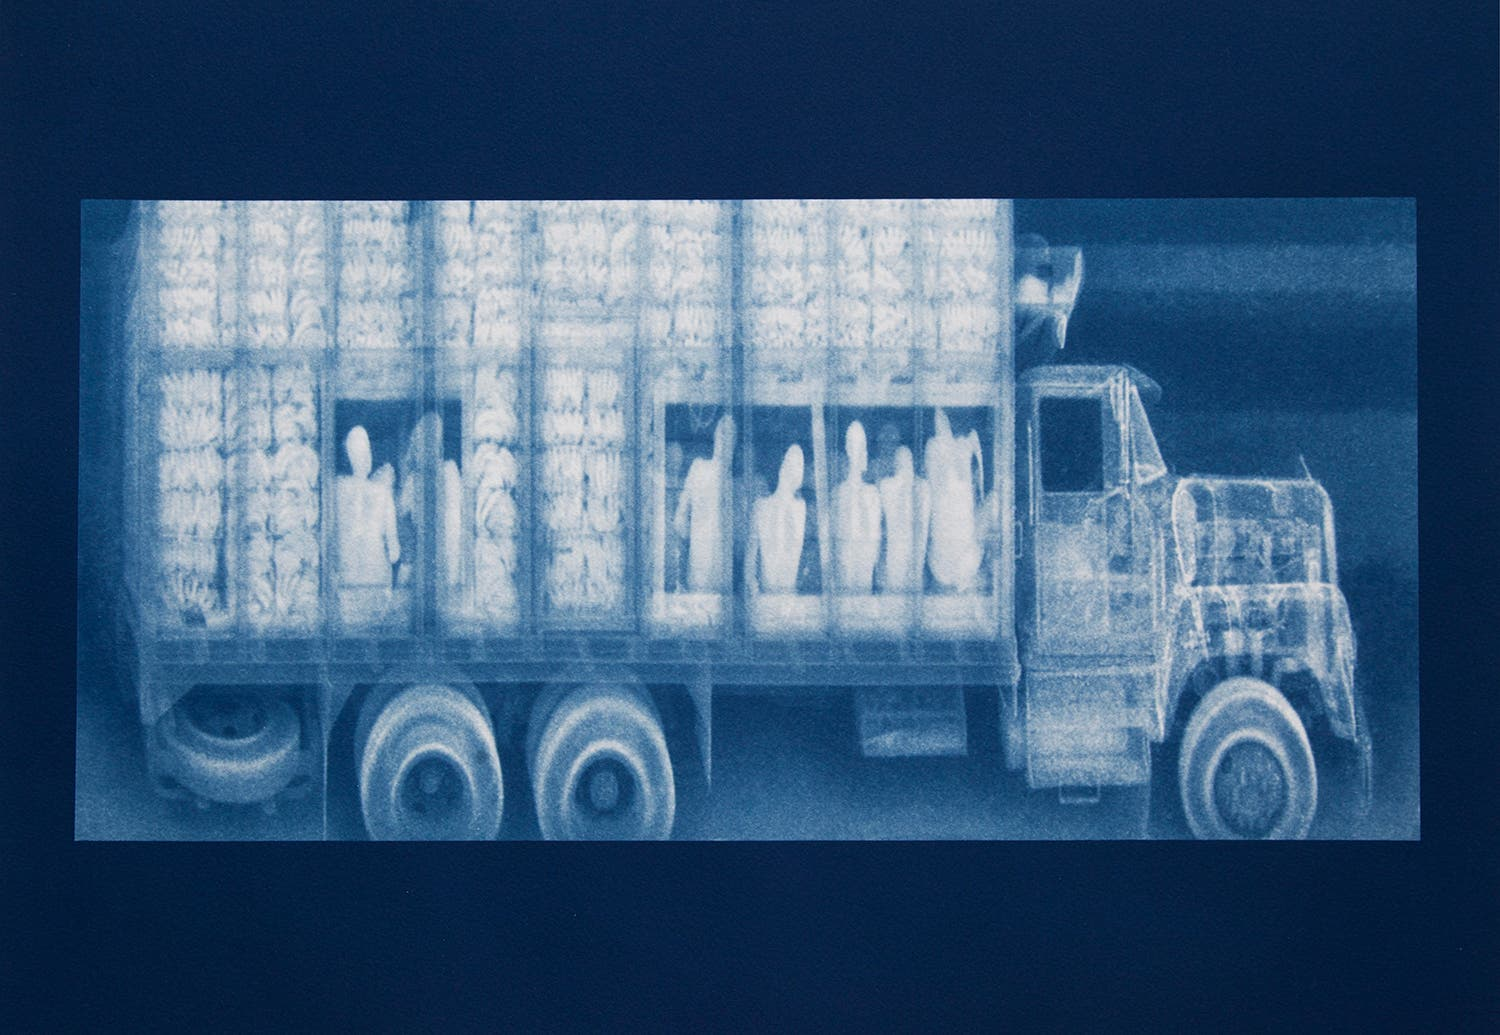 Nolle Mason's Series on Illegal Immigration Makes Digital X-Rays Analog